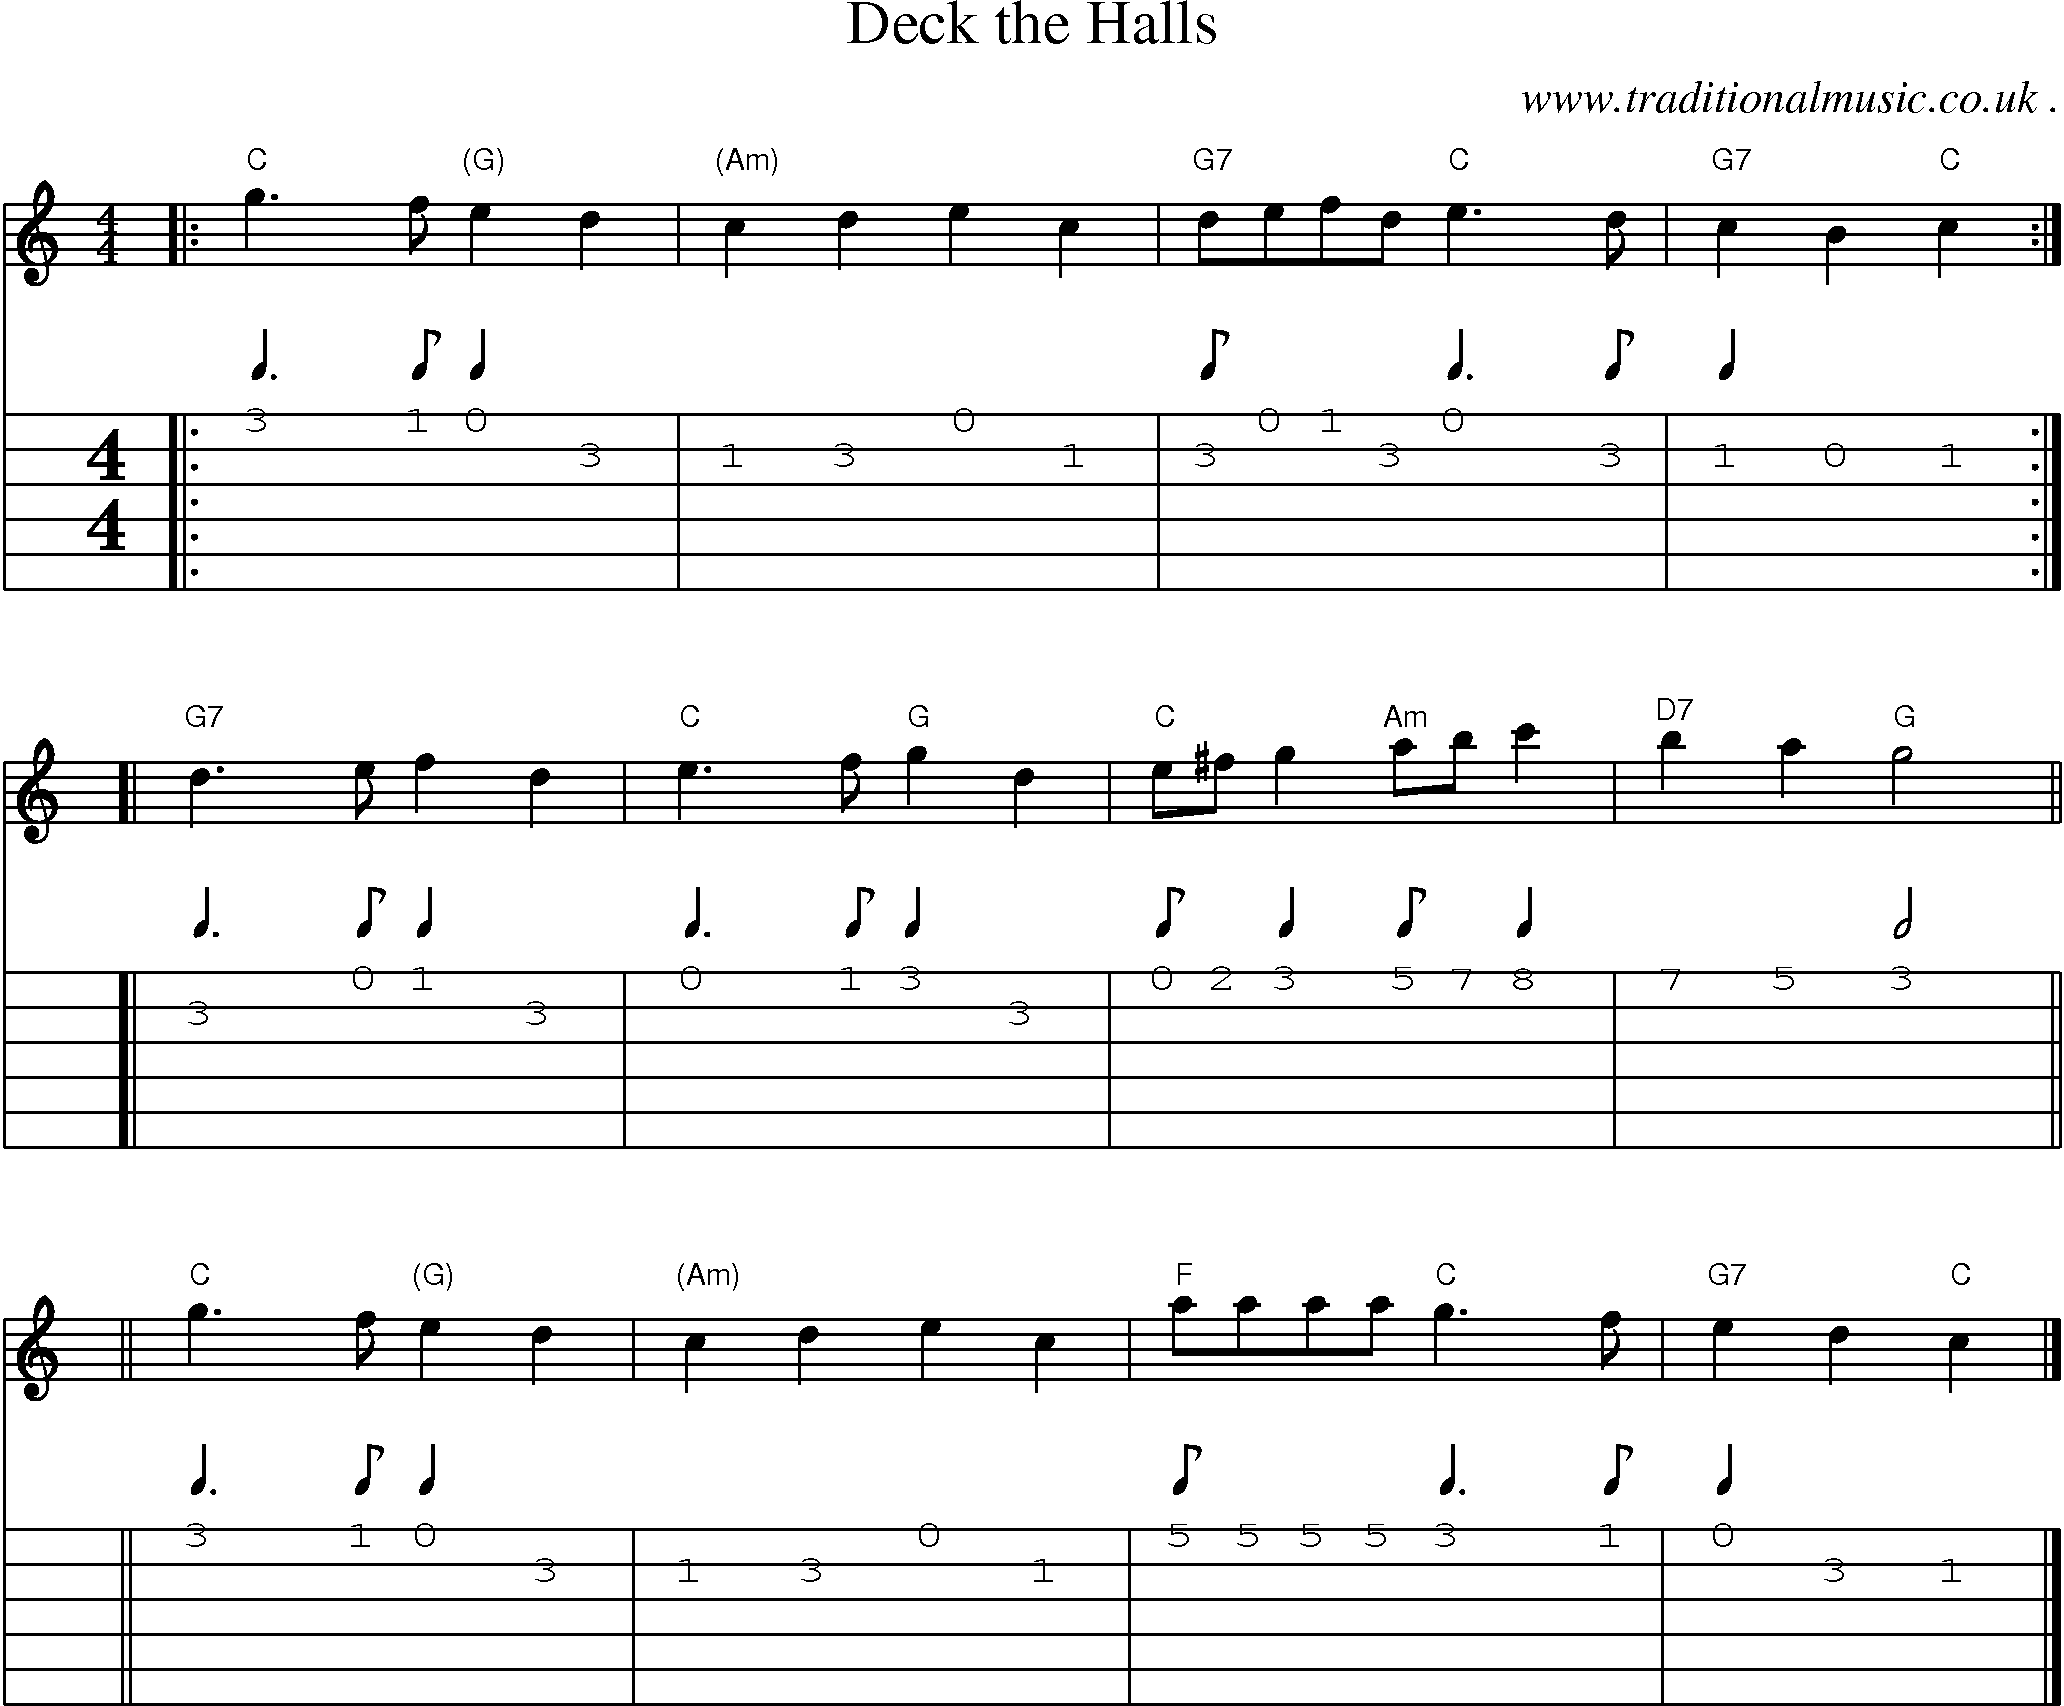 sheet music score chords and guitar tabs for deck the halls